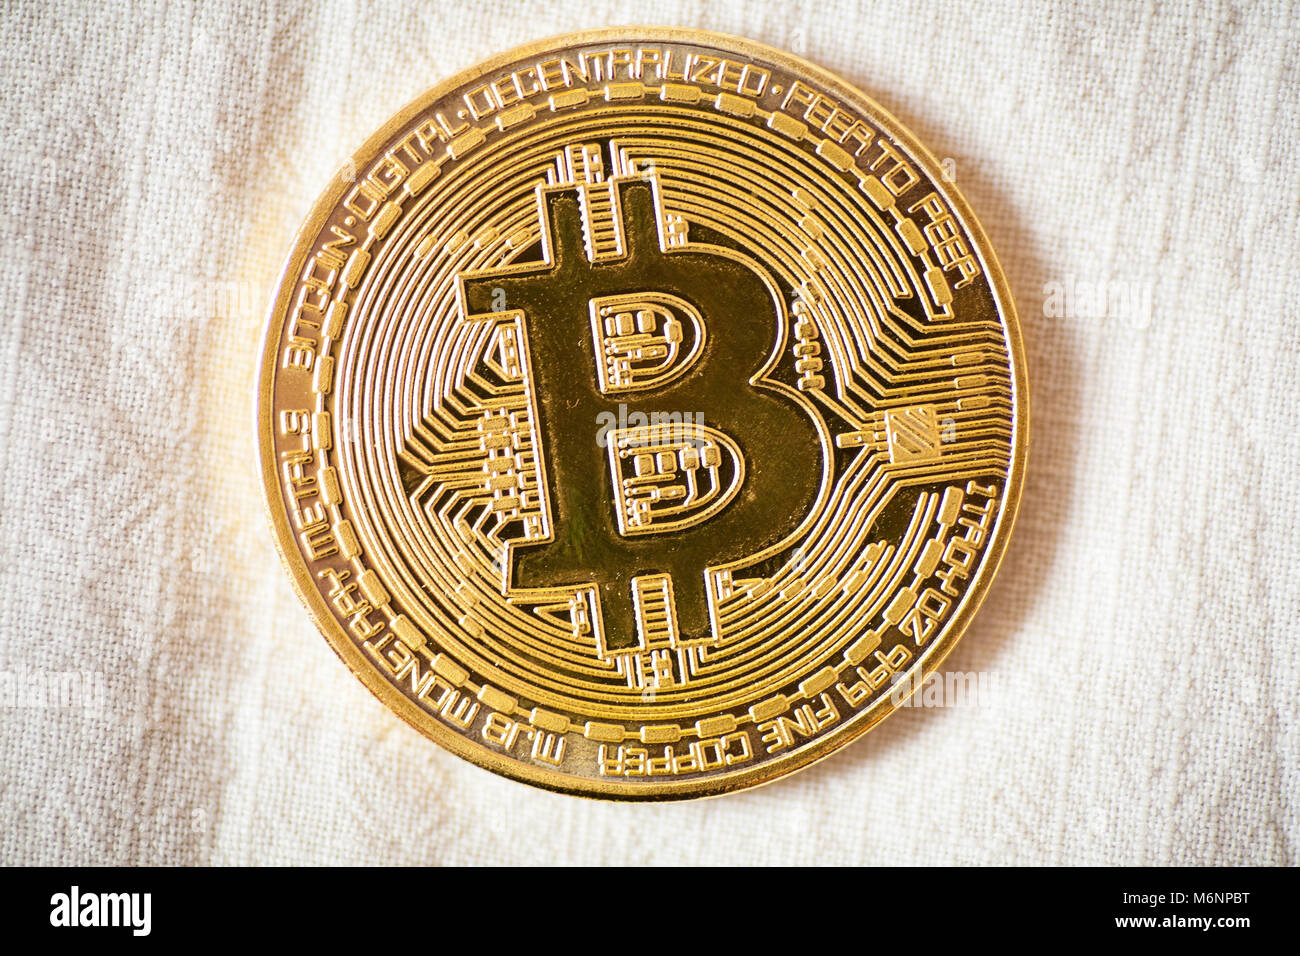 Bitcoin Logo Gold Coin Last Bitcoin Symbol Of Crypto Currency And Stock Photo Alamy